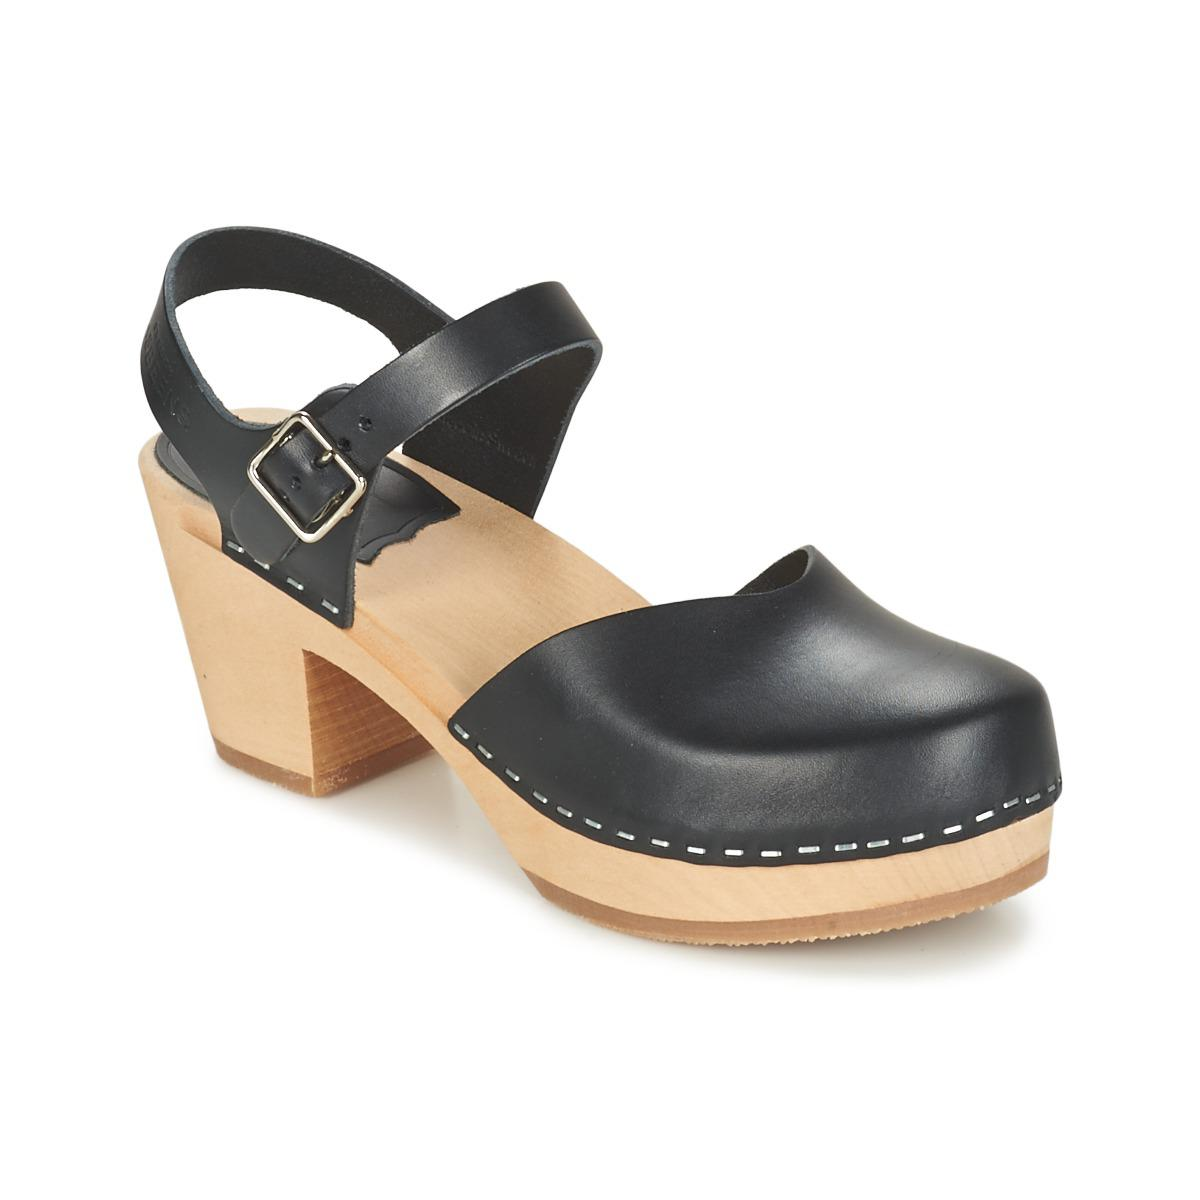 Swedish Hasbeens Covered High Women s Sandals In Black in Black - Lyst 9e8fcf2a2